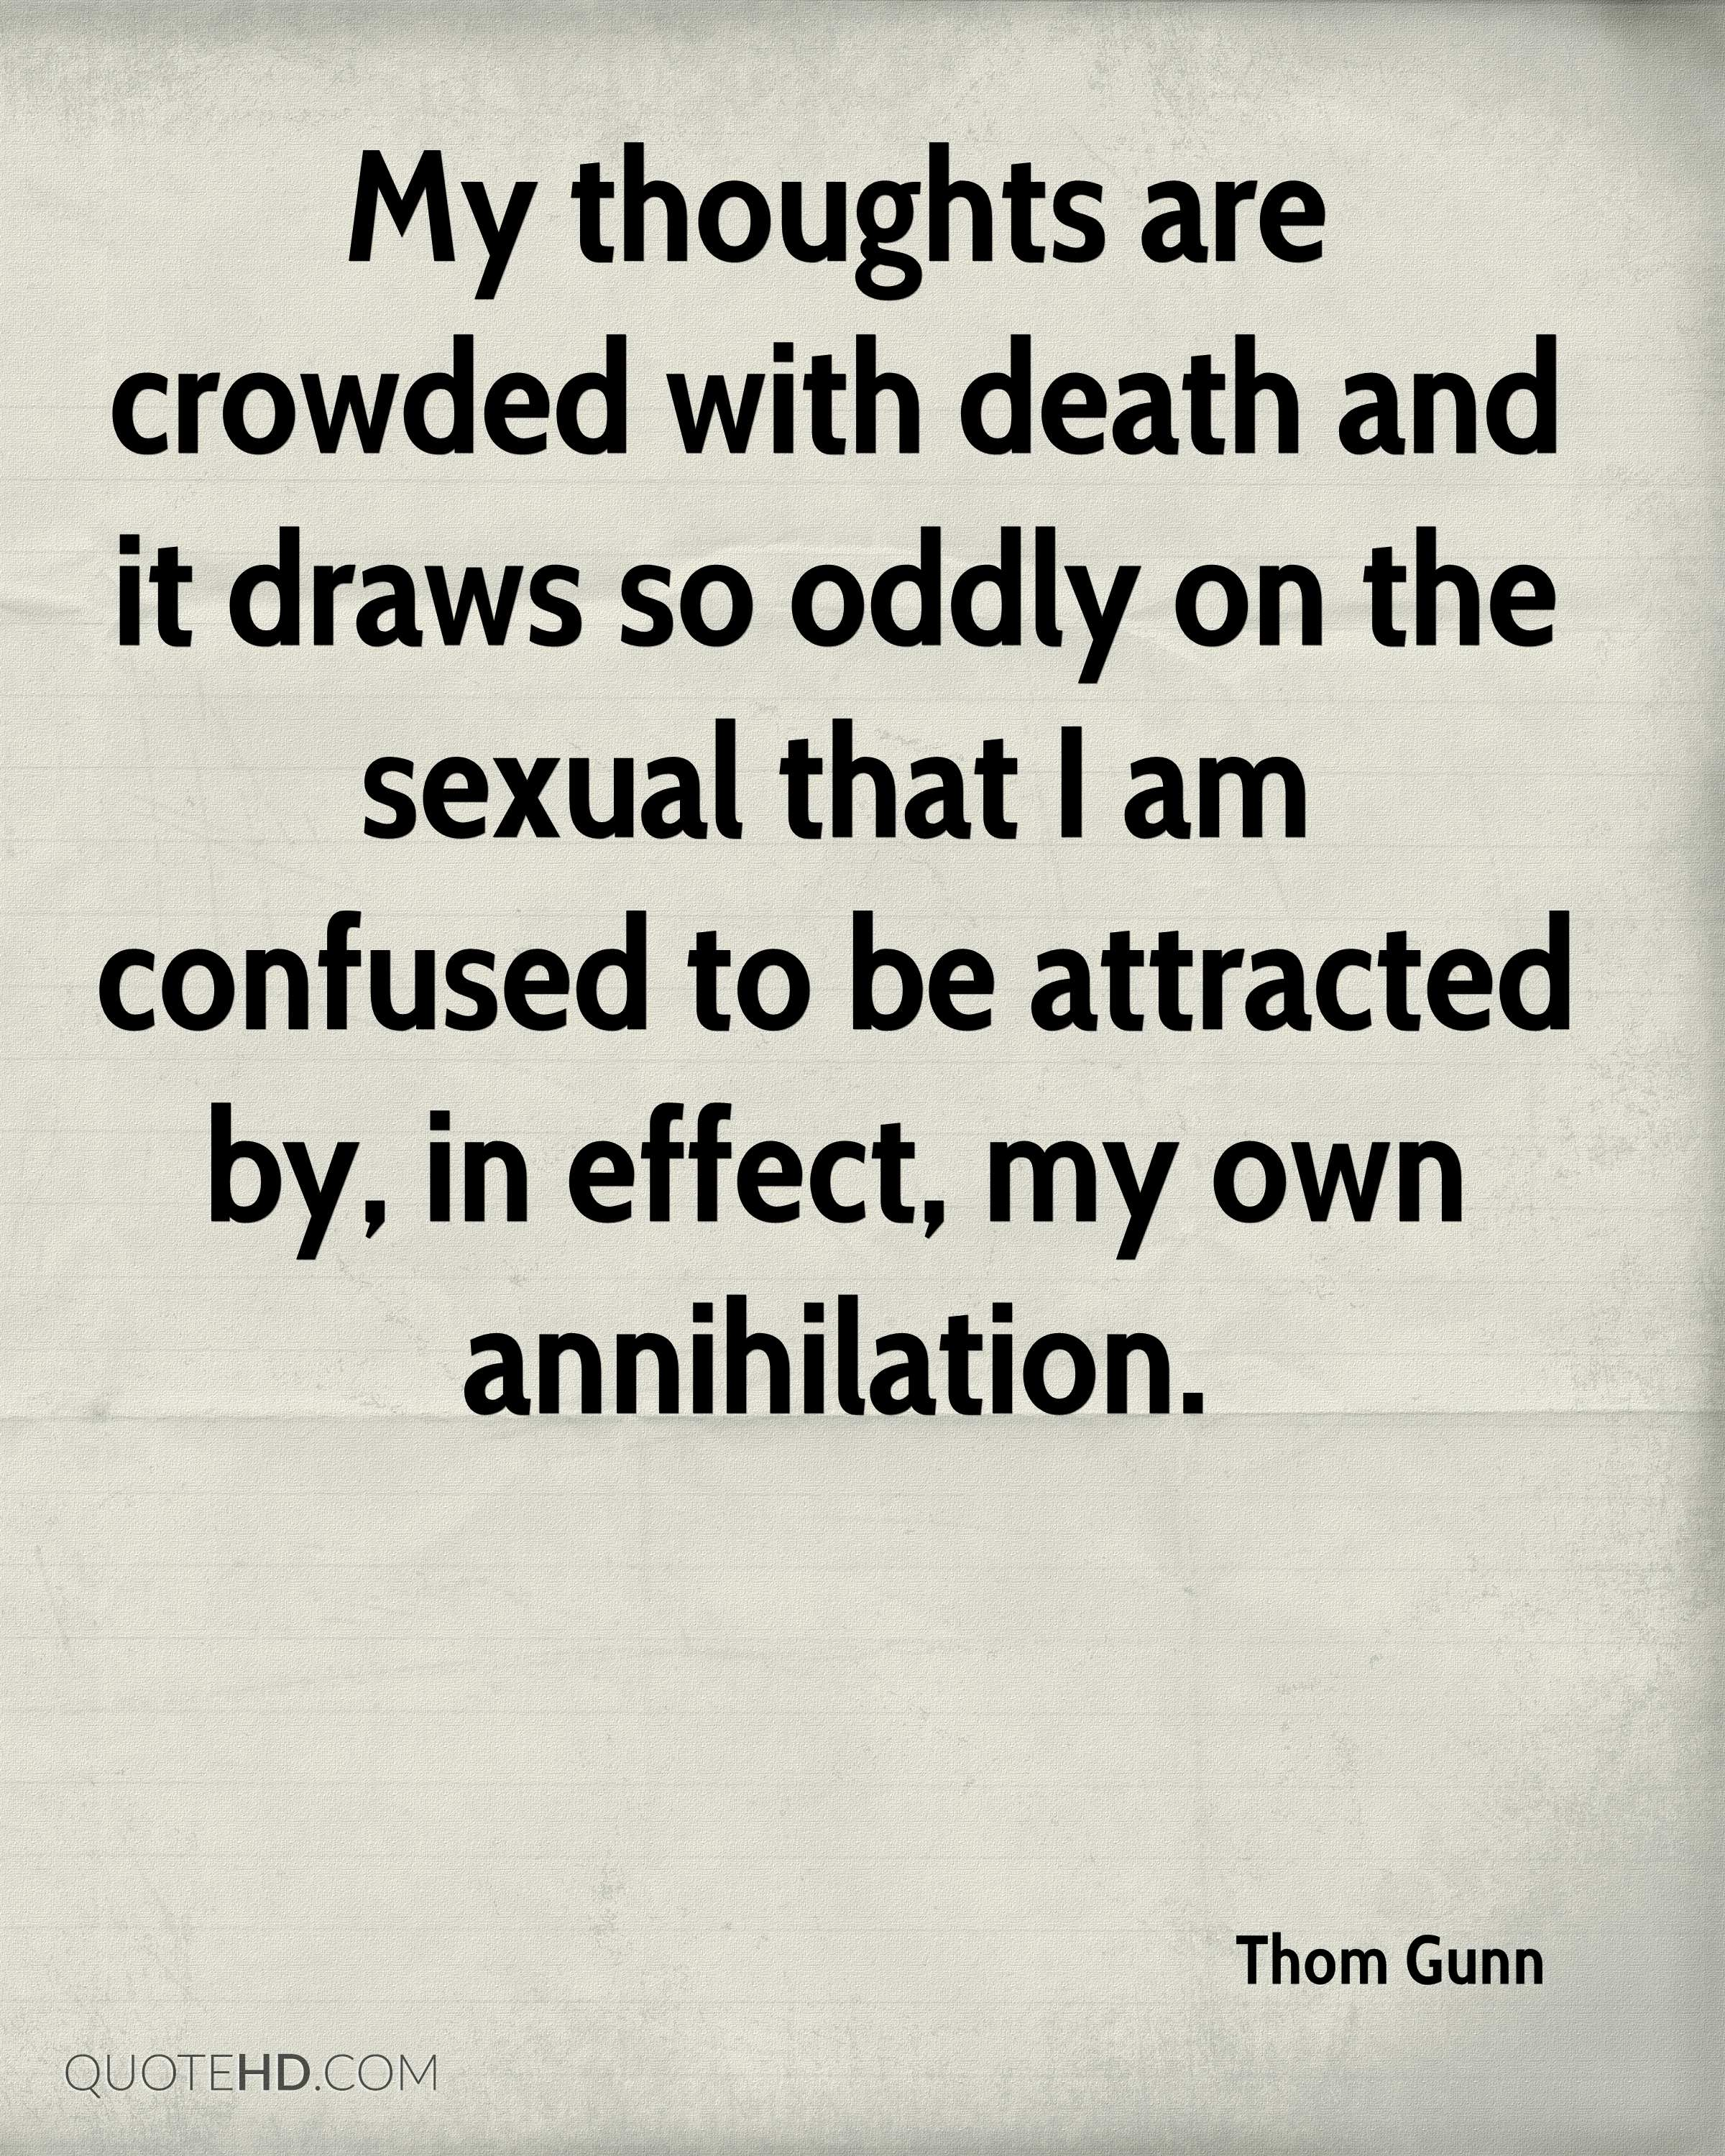 My thoughts are crowded with death and it draws so oddly on the sexual that I am confused to be attracted by, in effect, my own annihilation.